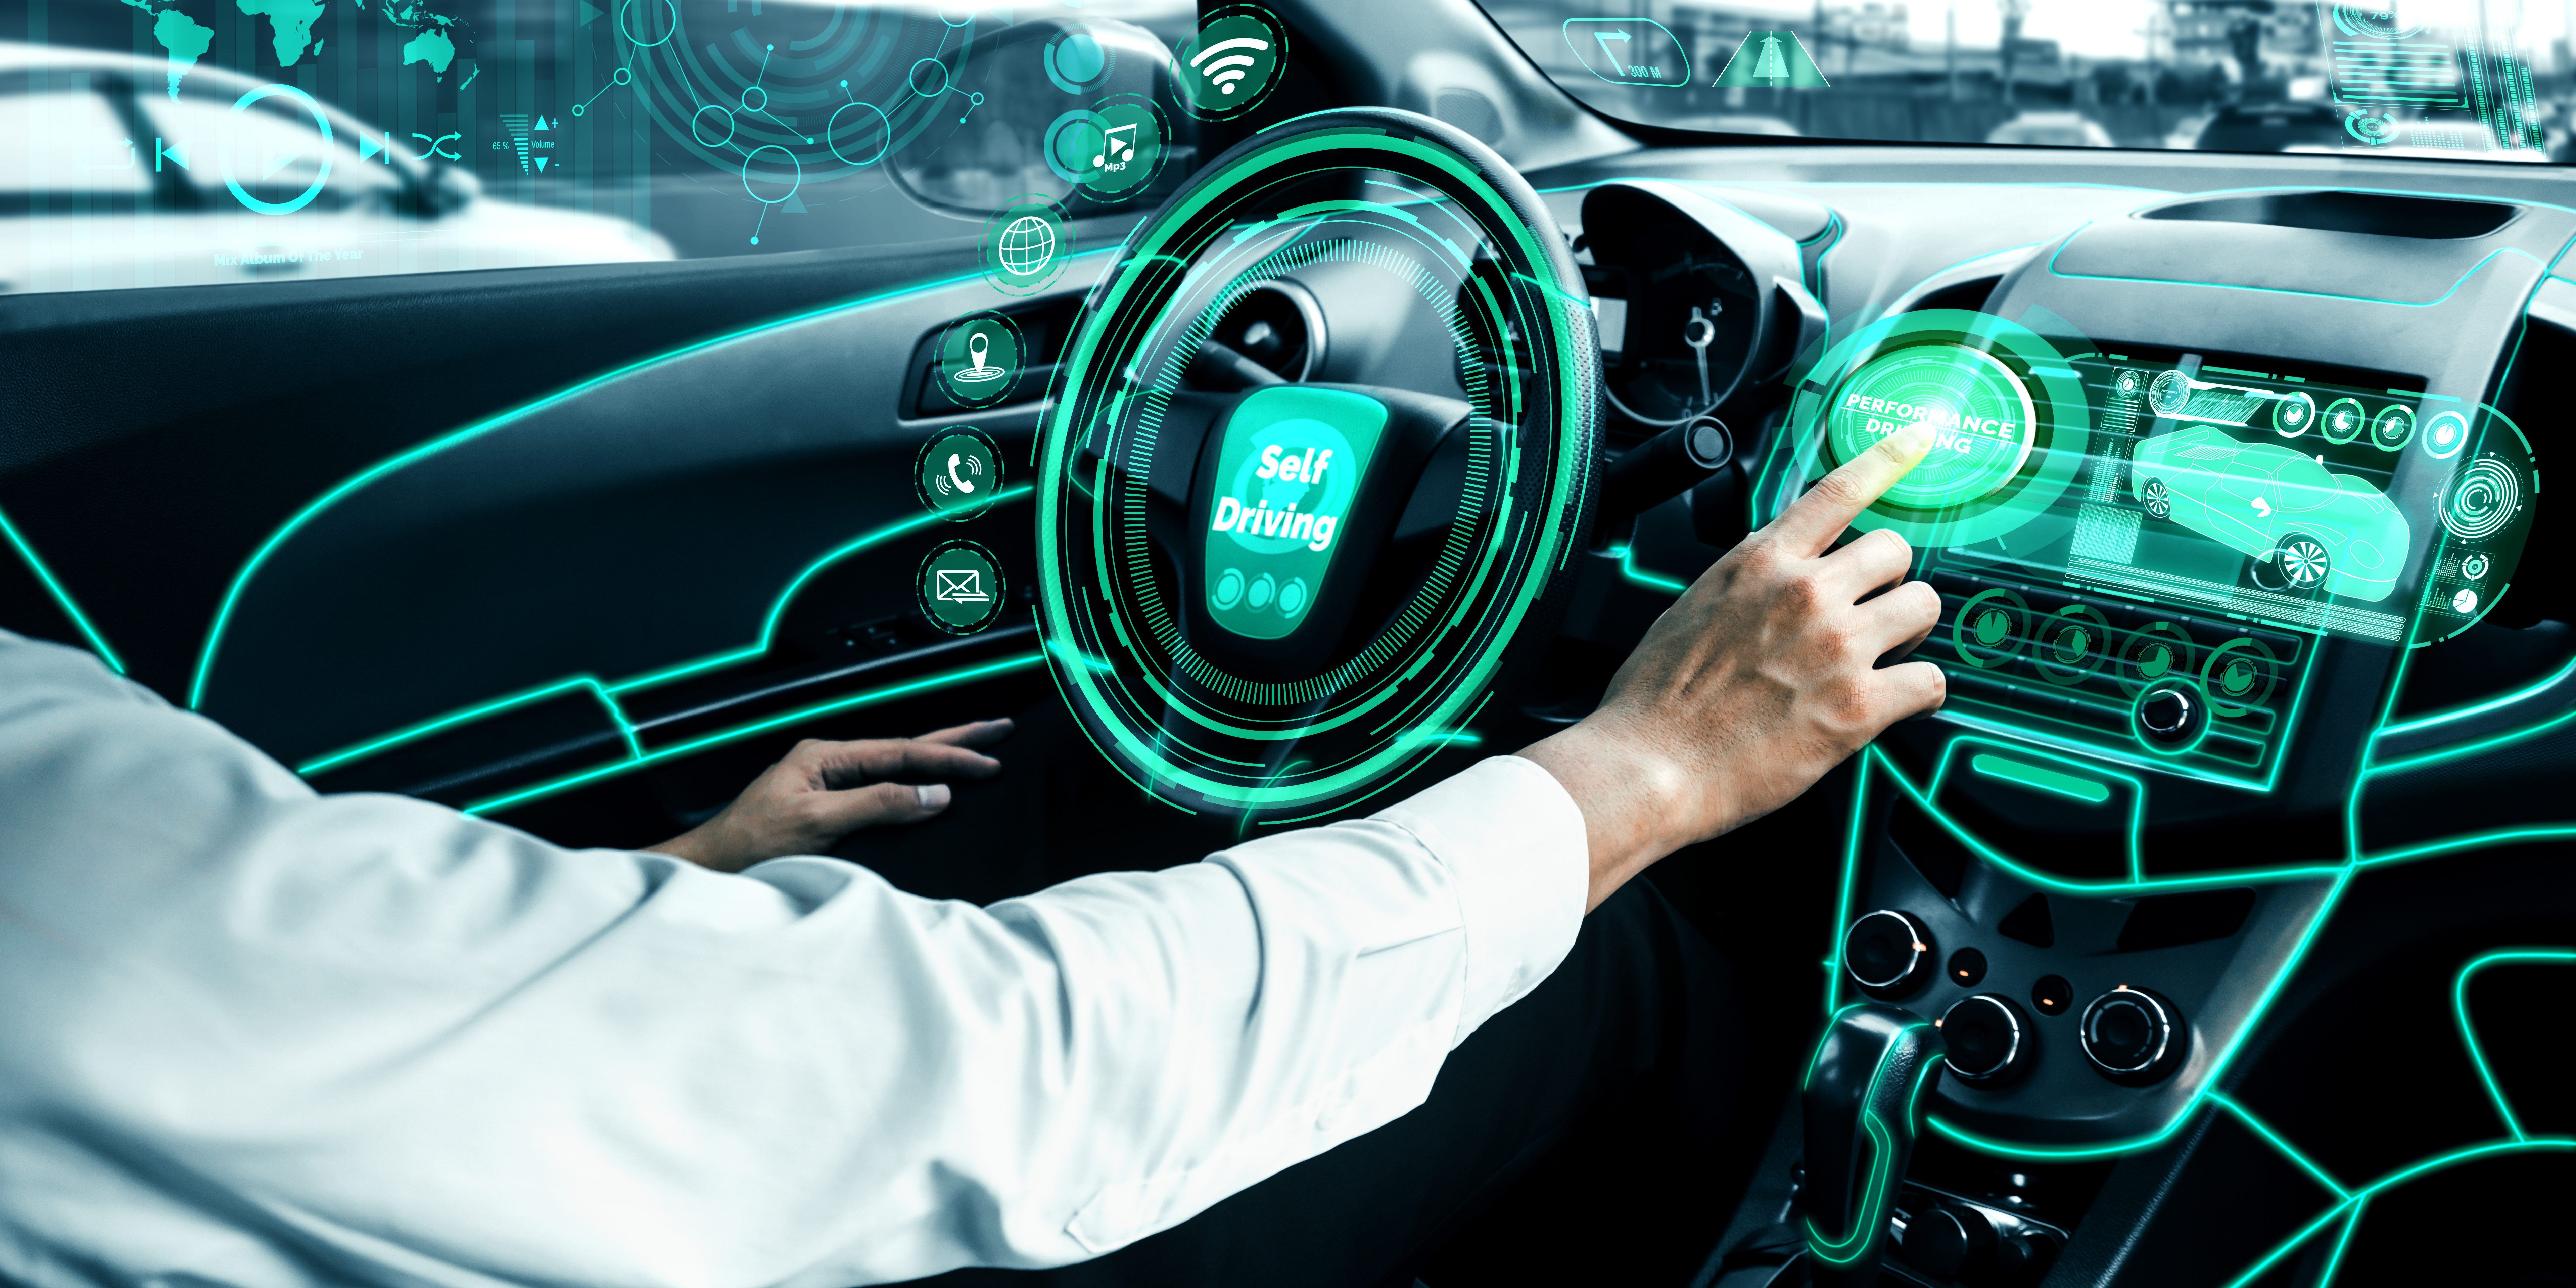 self driving car, safety